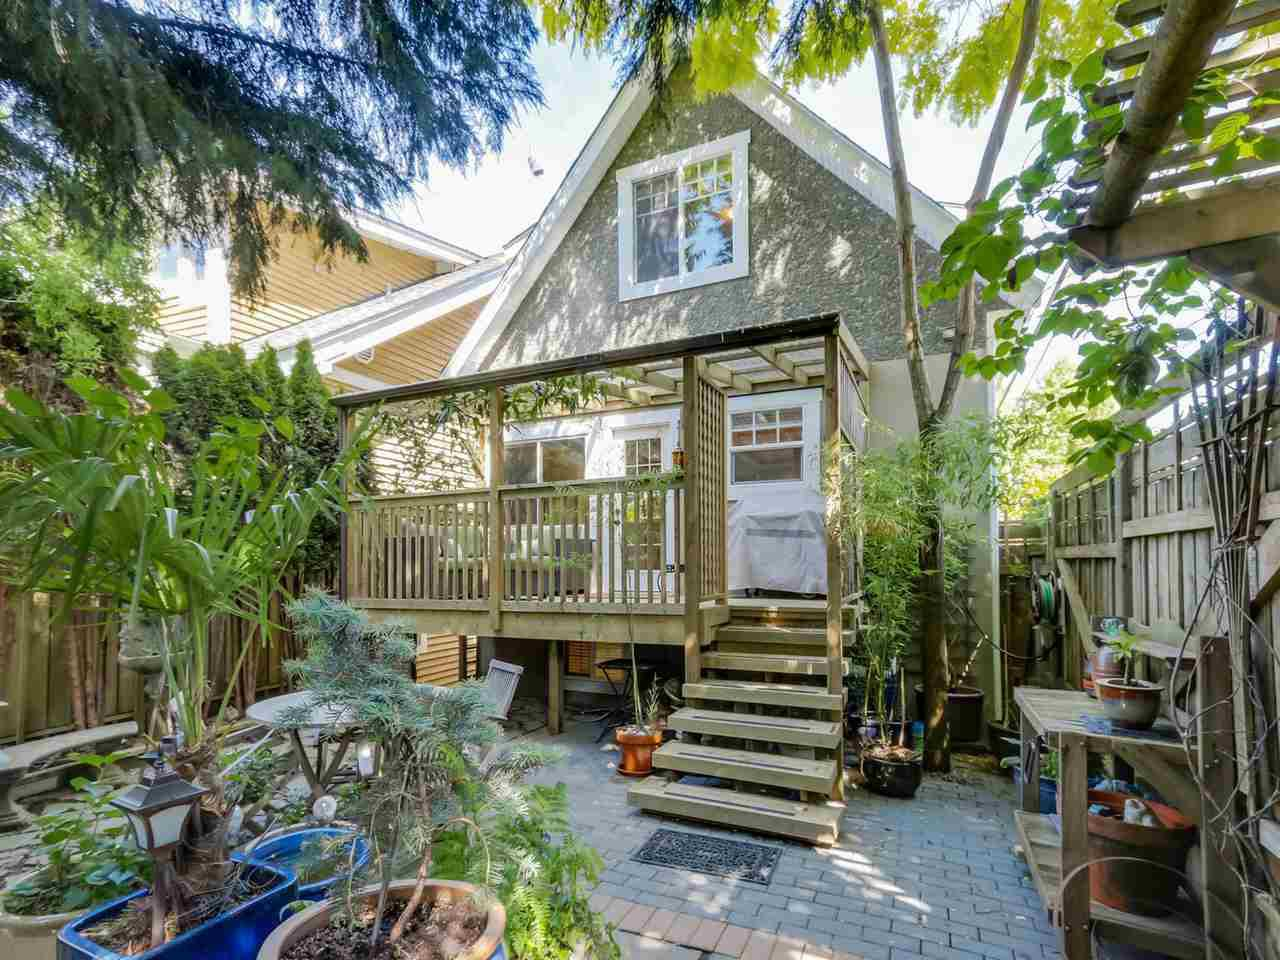 Main Photo: 4197 JOHN STREET in Vancouver: Main House for sale (Vancouver East)  : MLS®# R2074414